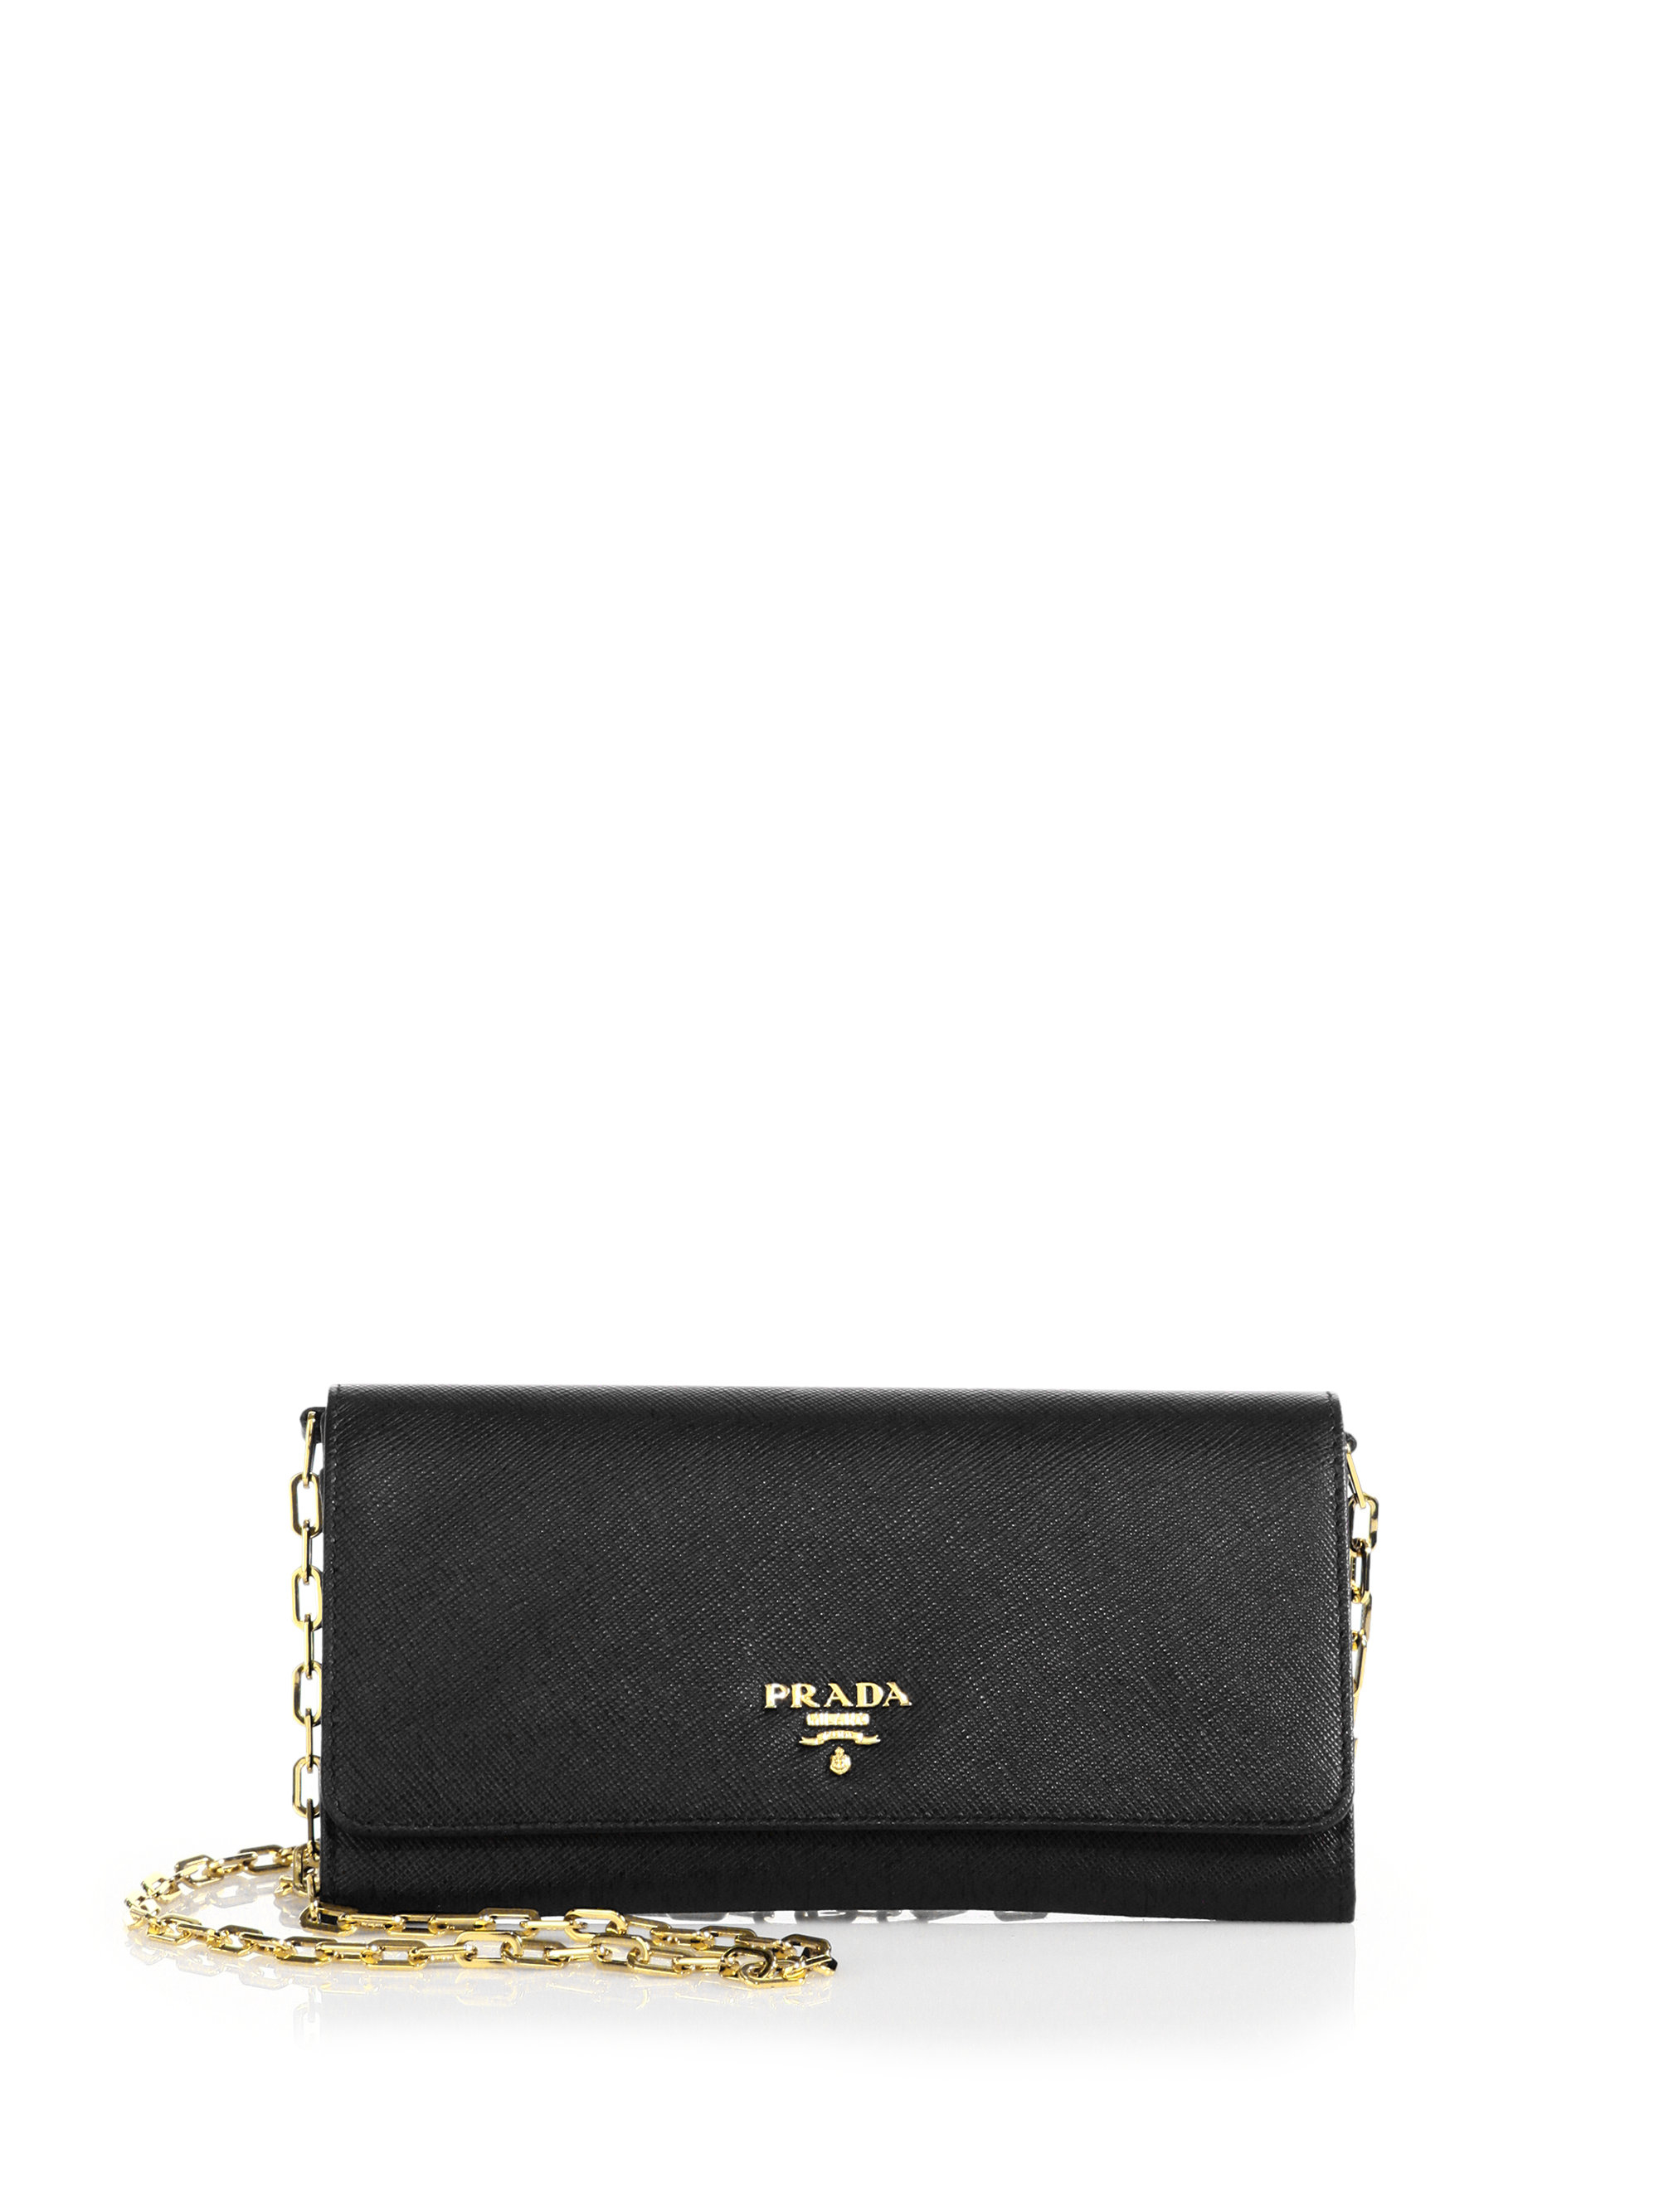 0113856e5a87 Bullseye Chain Wallet Black.Find great deals on eBay for prada wallet on  chain and prada bag.